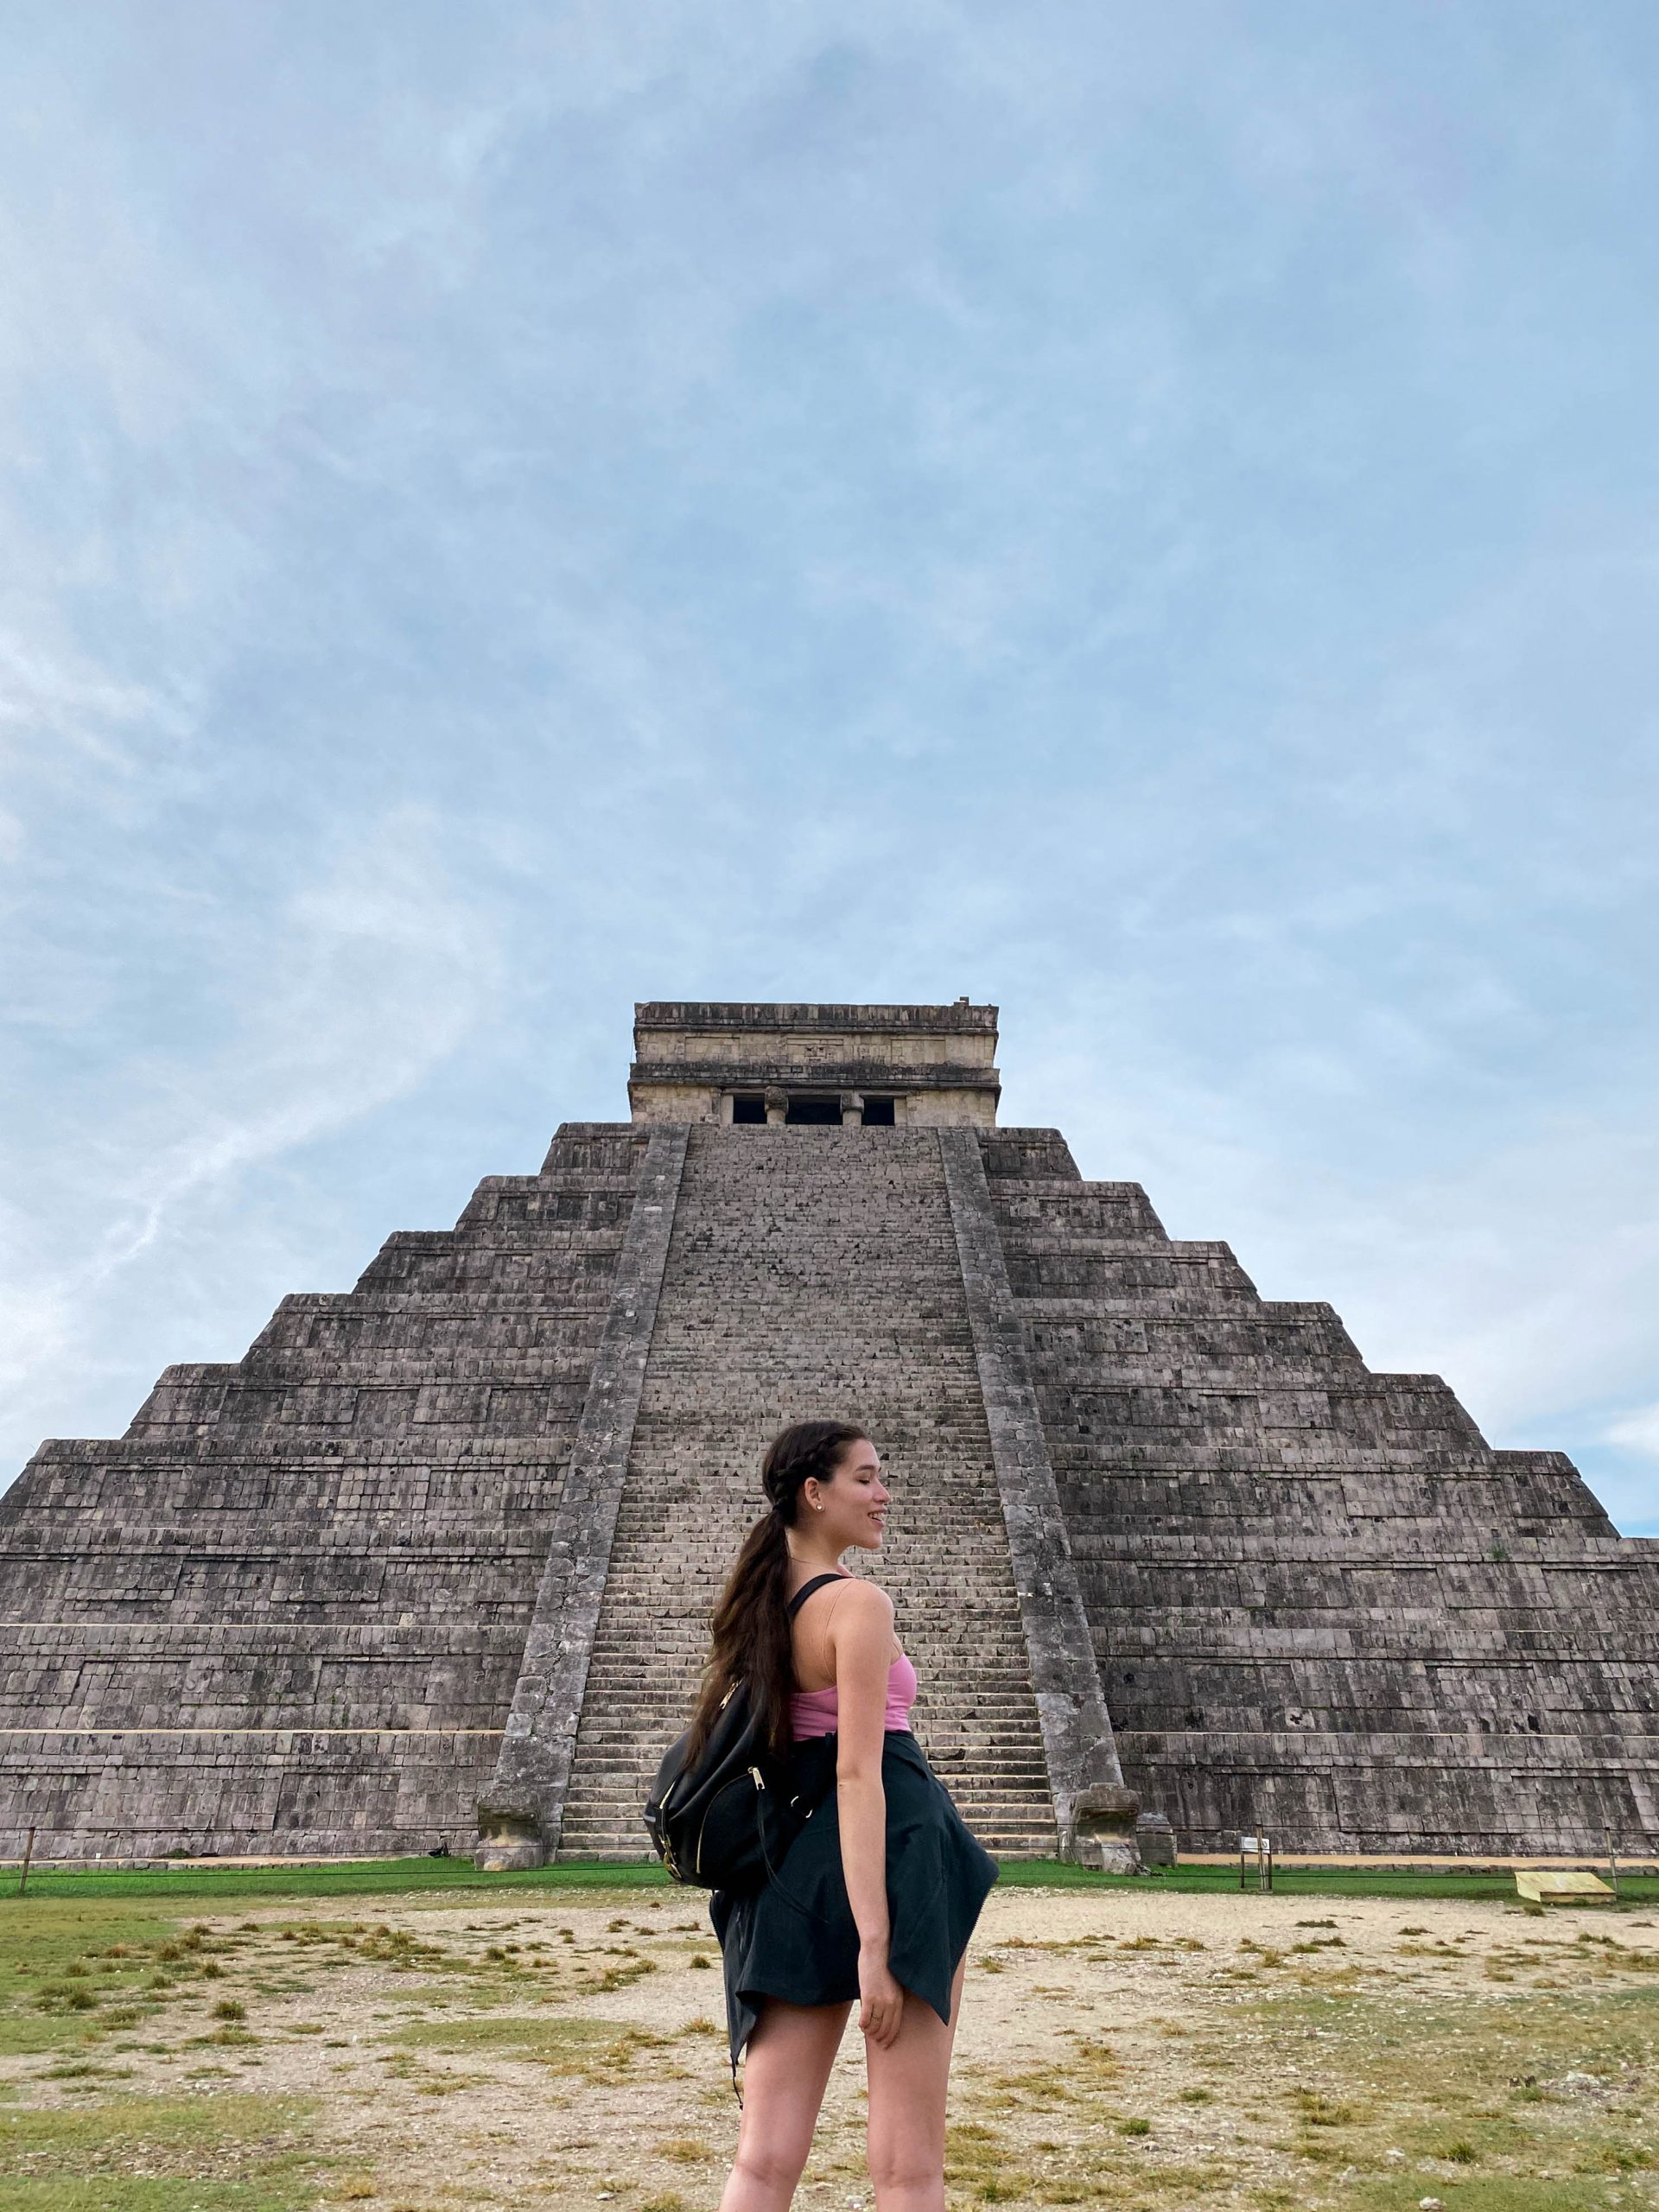 chichen itza el castillo yucatan peninsula mexico day trip rebecca minkoff julian backpack lululemon define jacket meshki cami mayan ruins